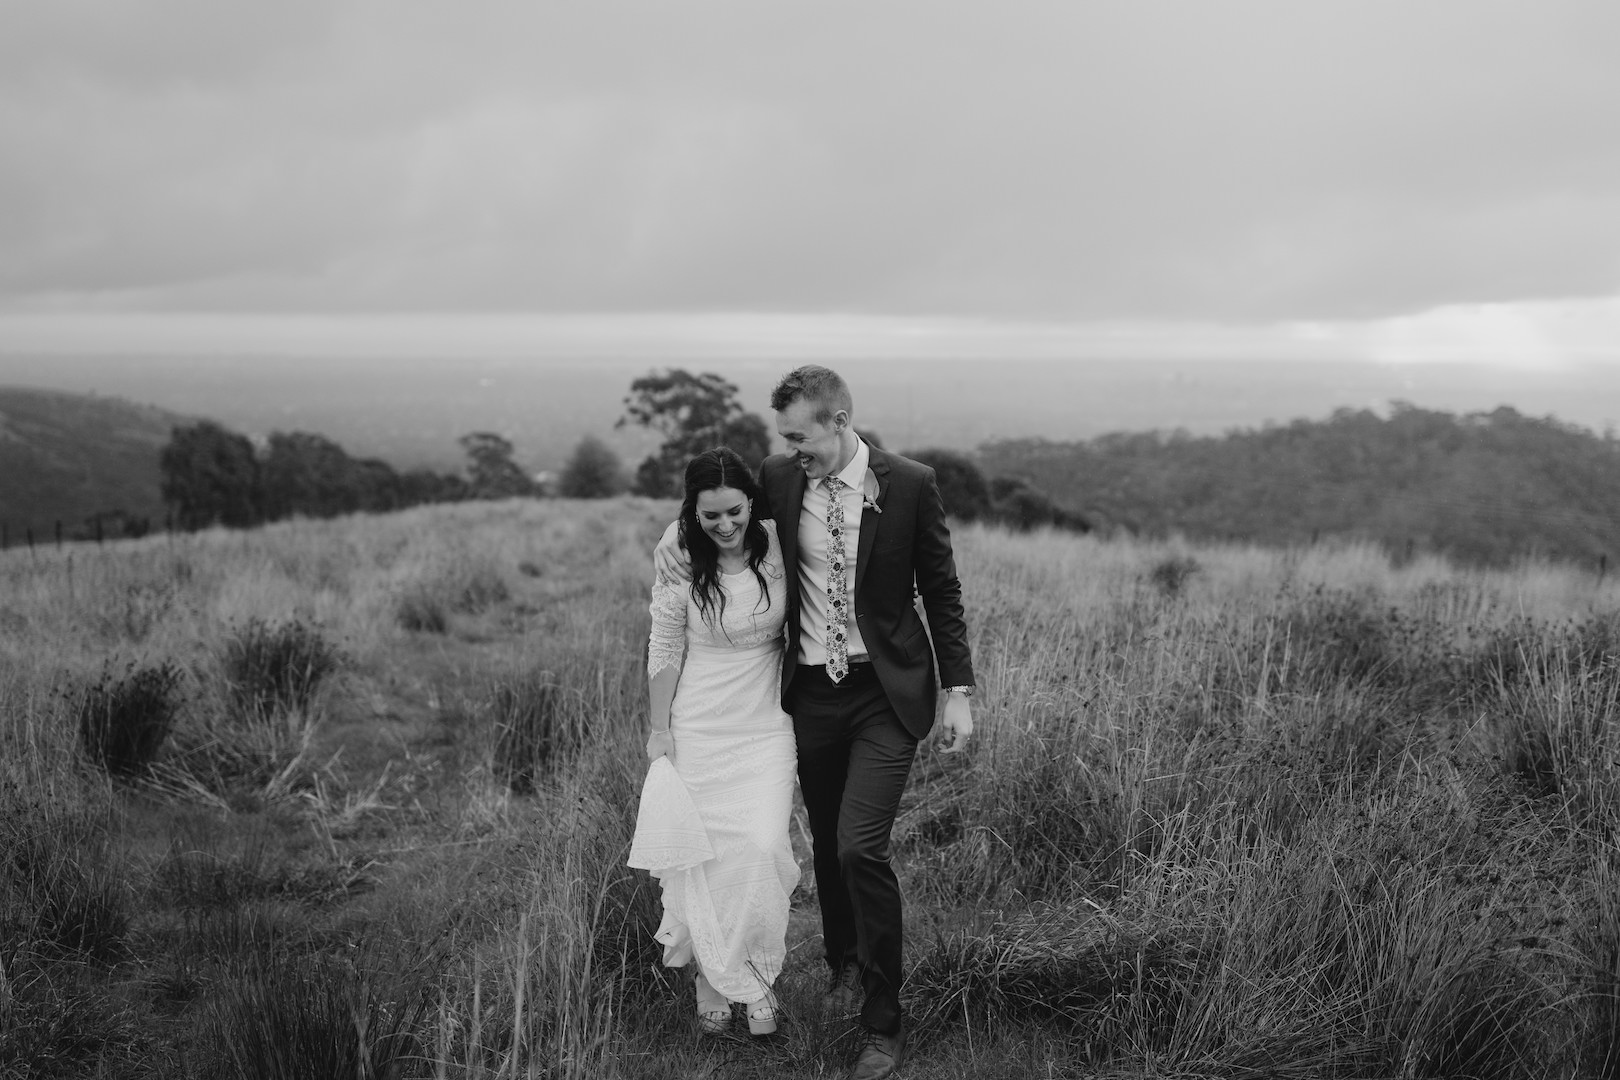 Emma+James-289resize.jpg